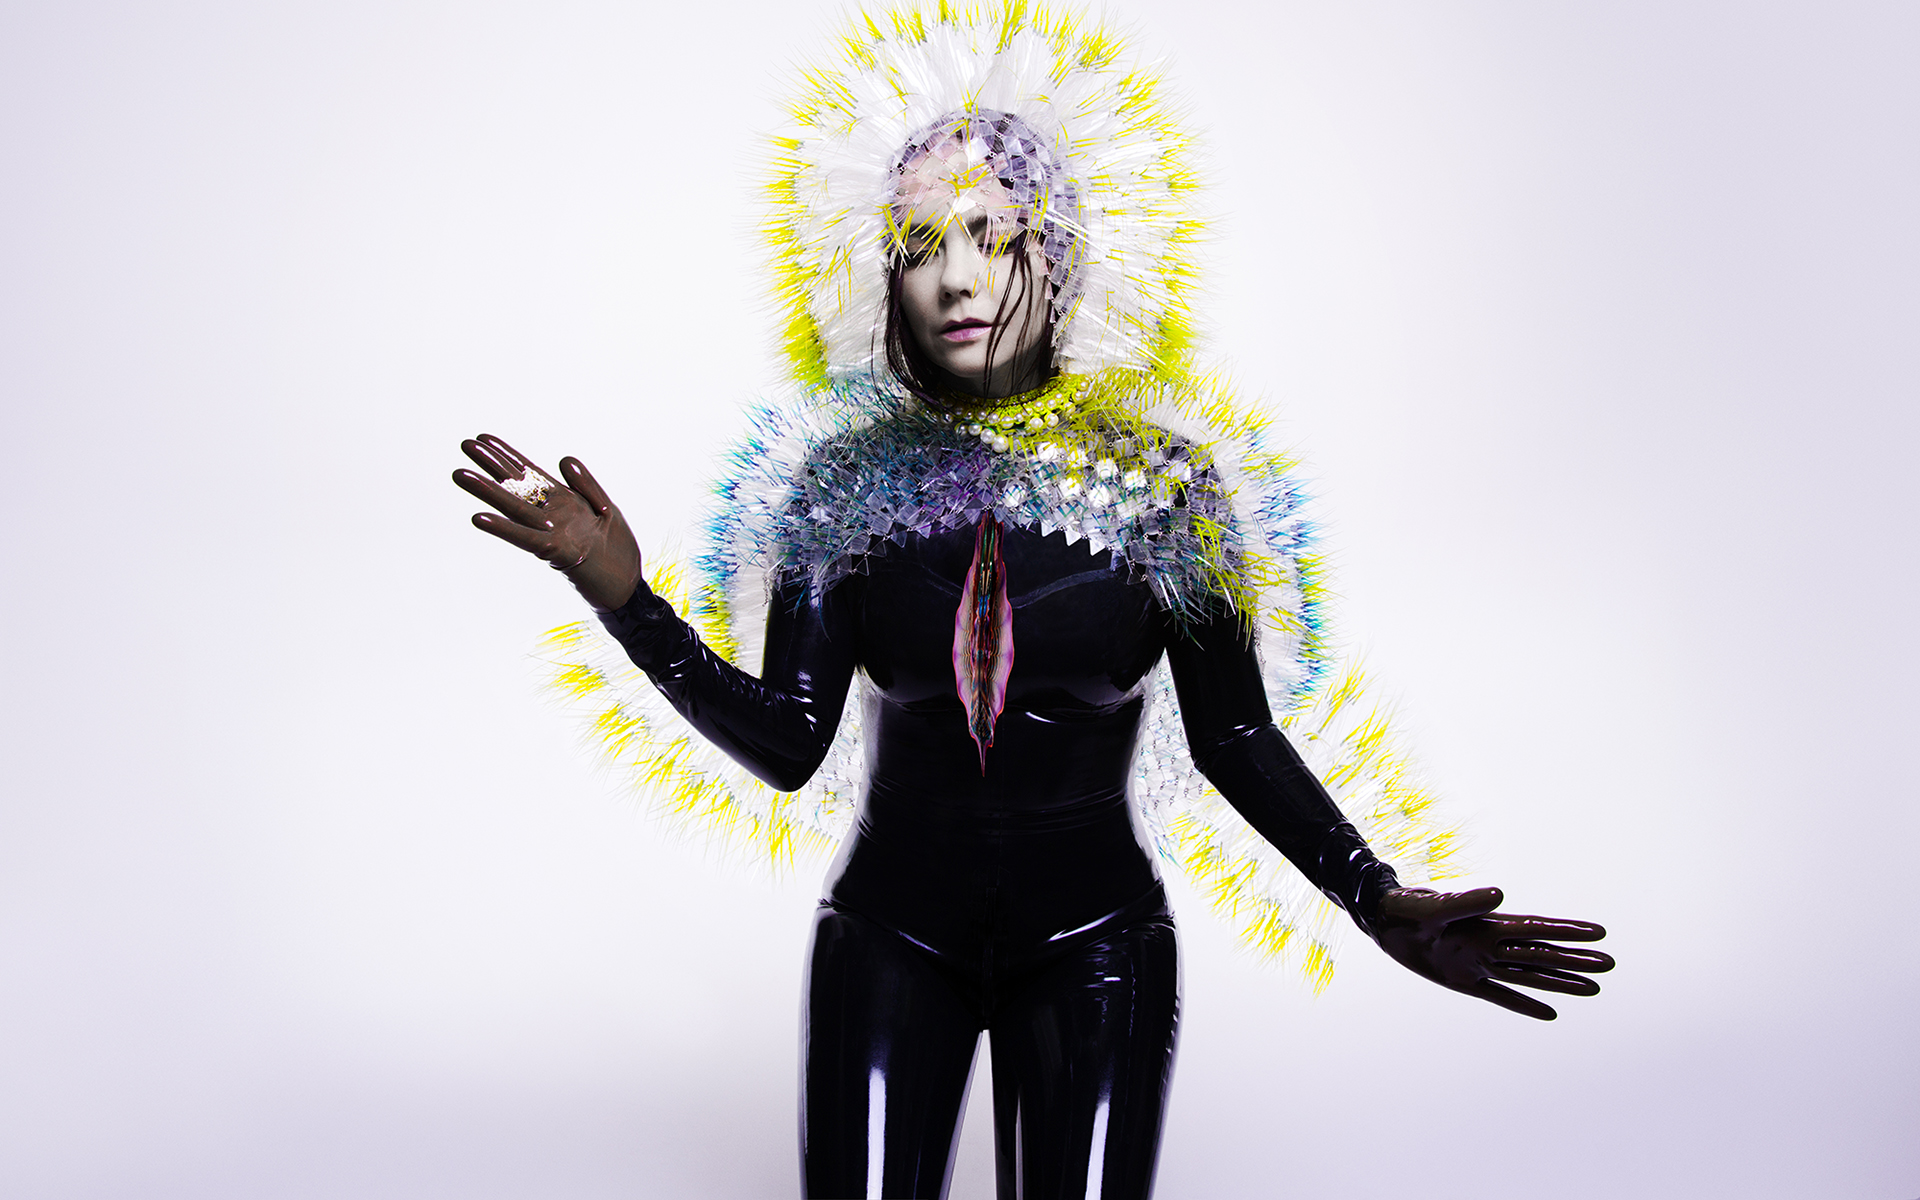 Björk Digital. Virtual Reality Exhibition